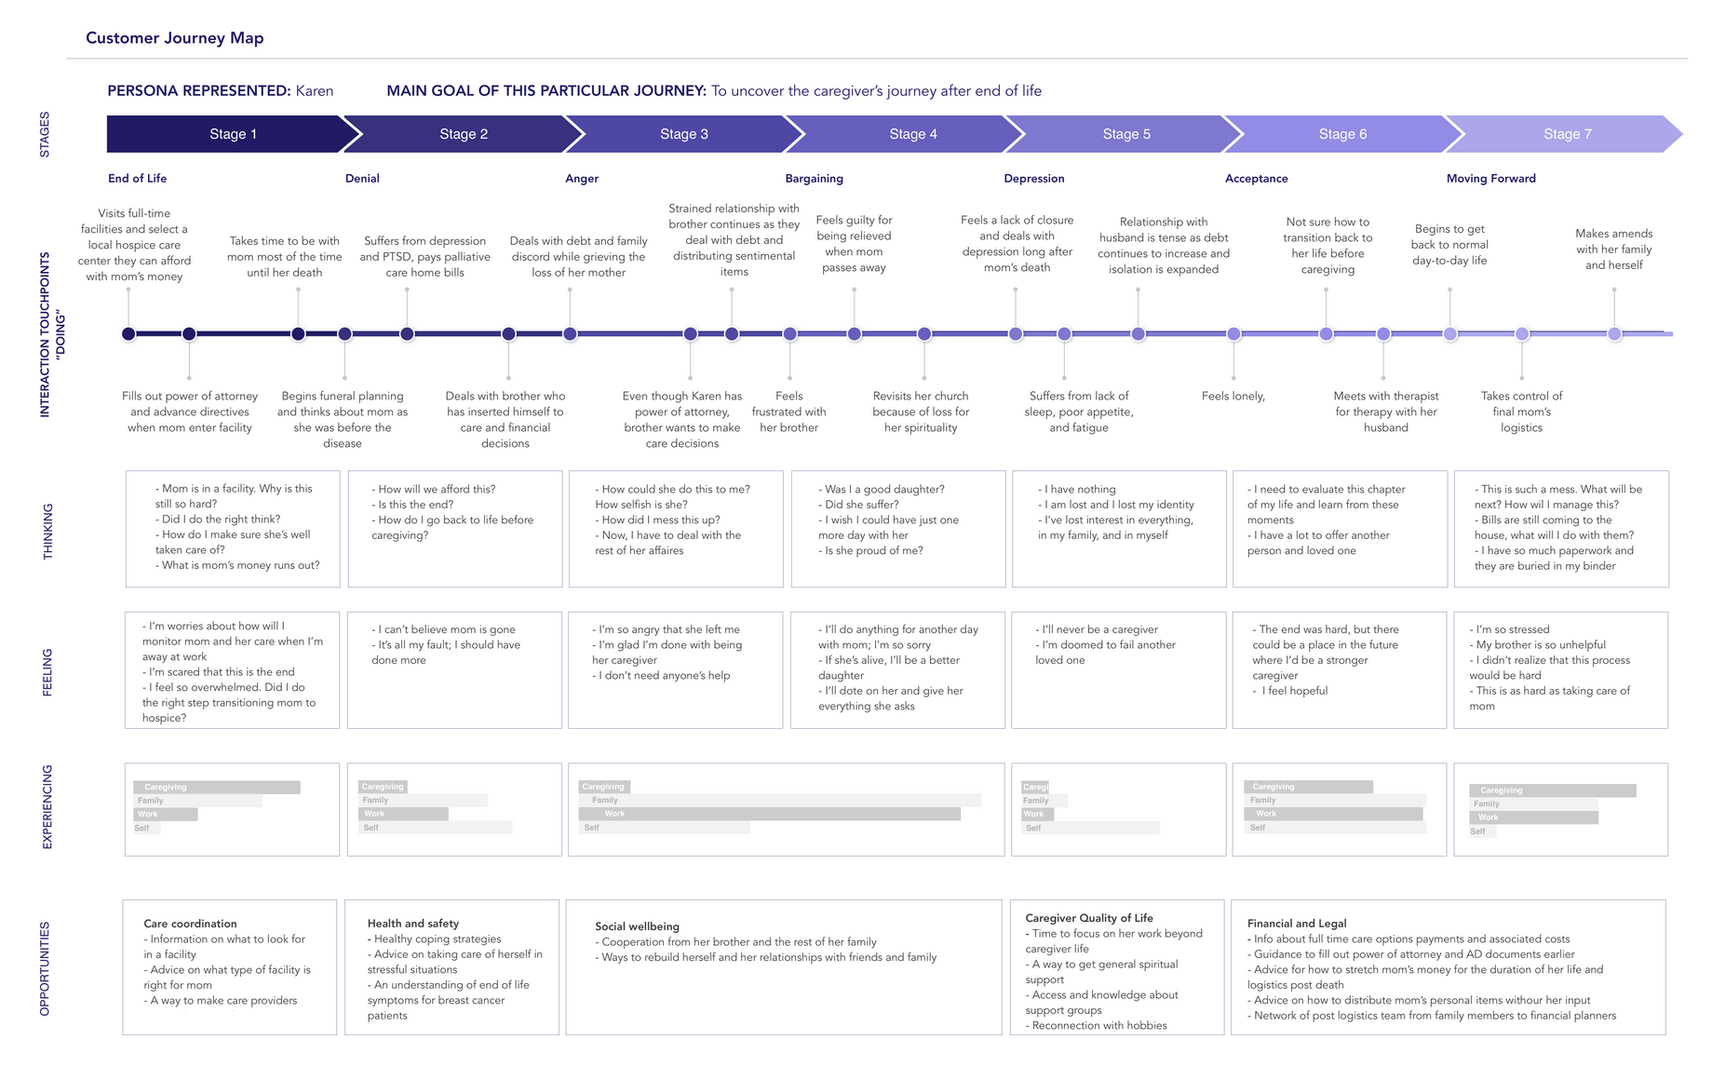 Customer Journey Map Template.png